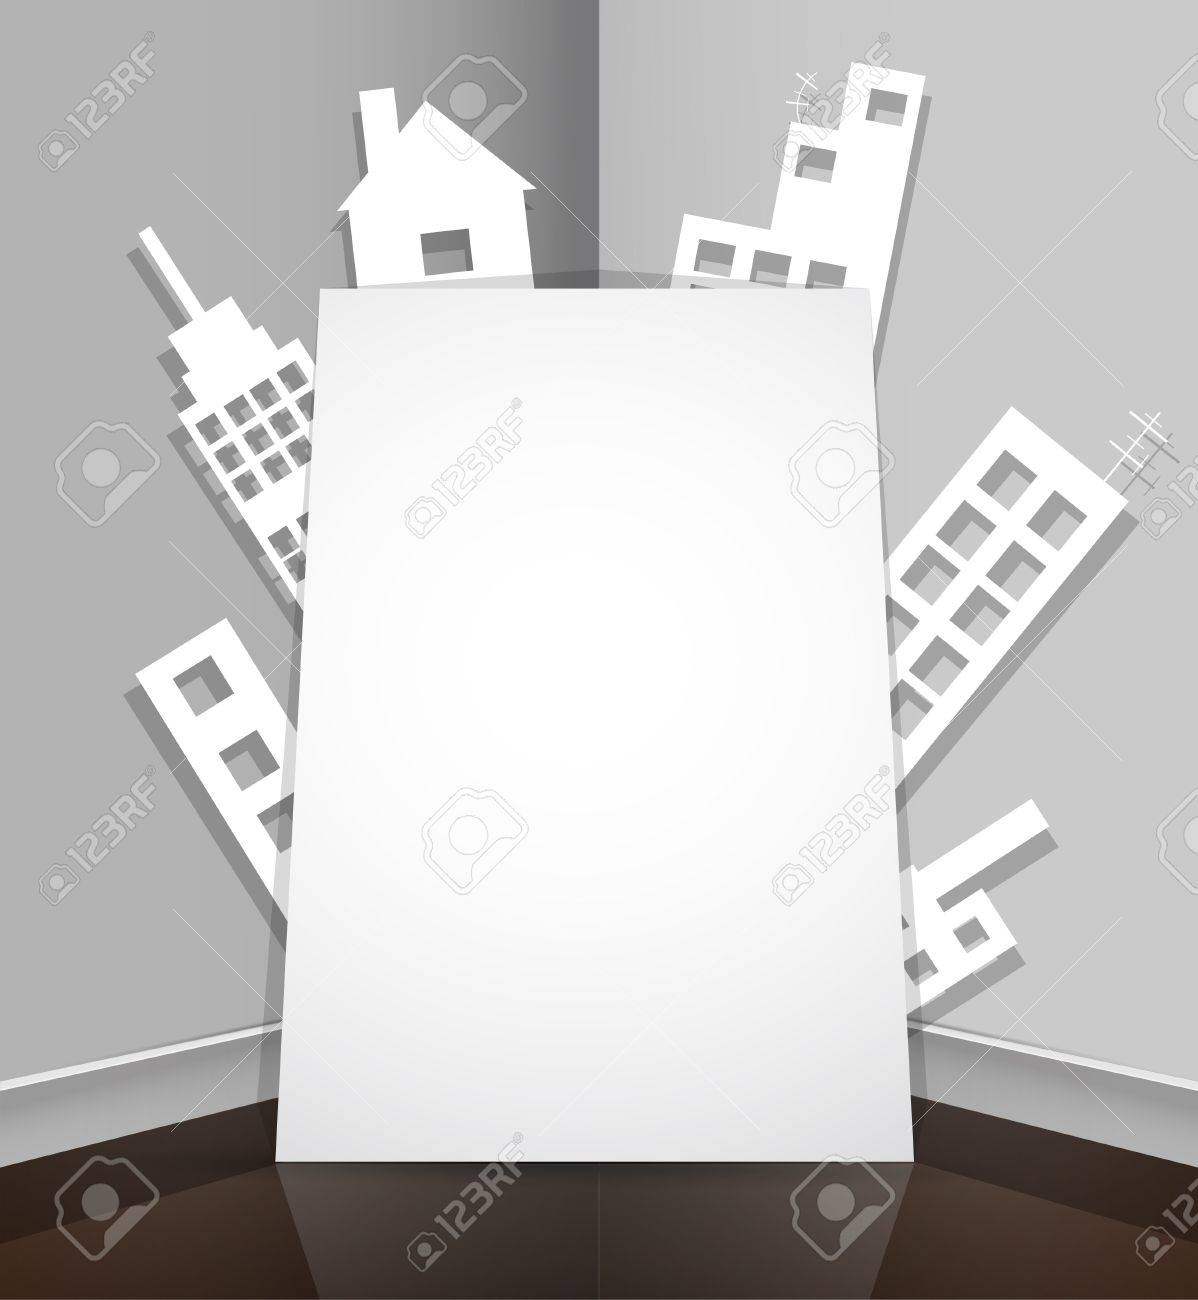 City abstract real estate paper house background Stock Vector - 14531056